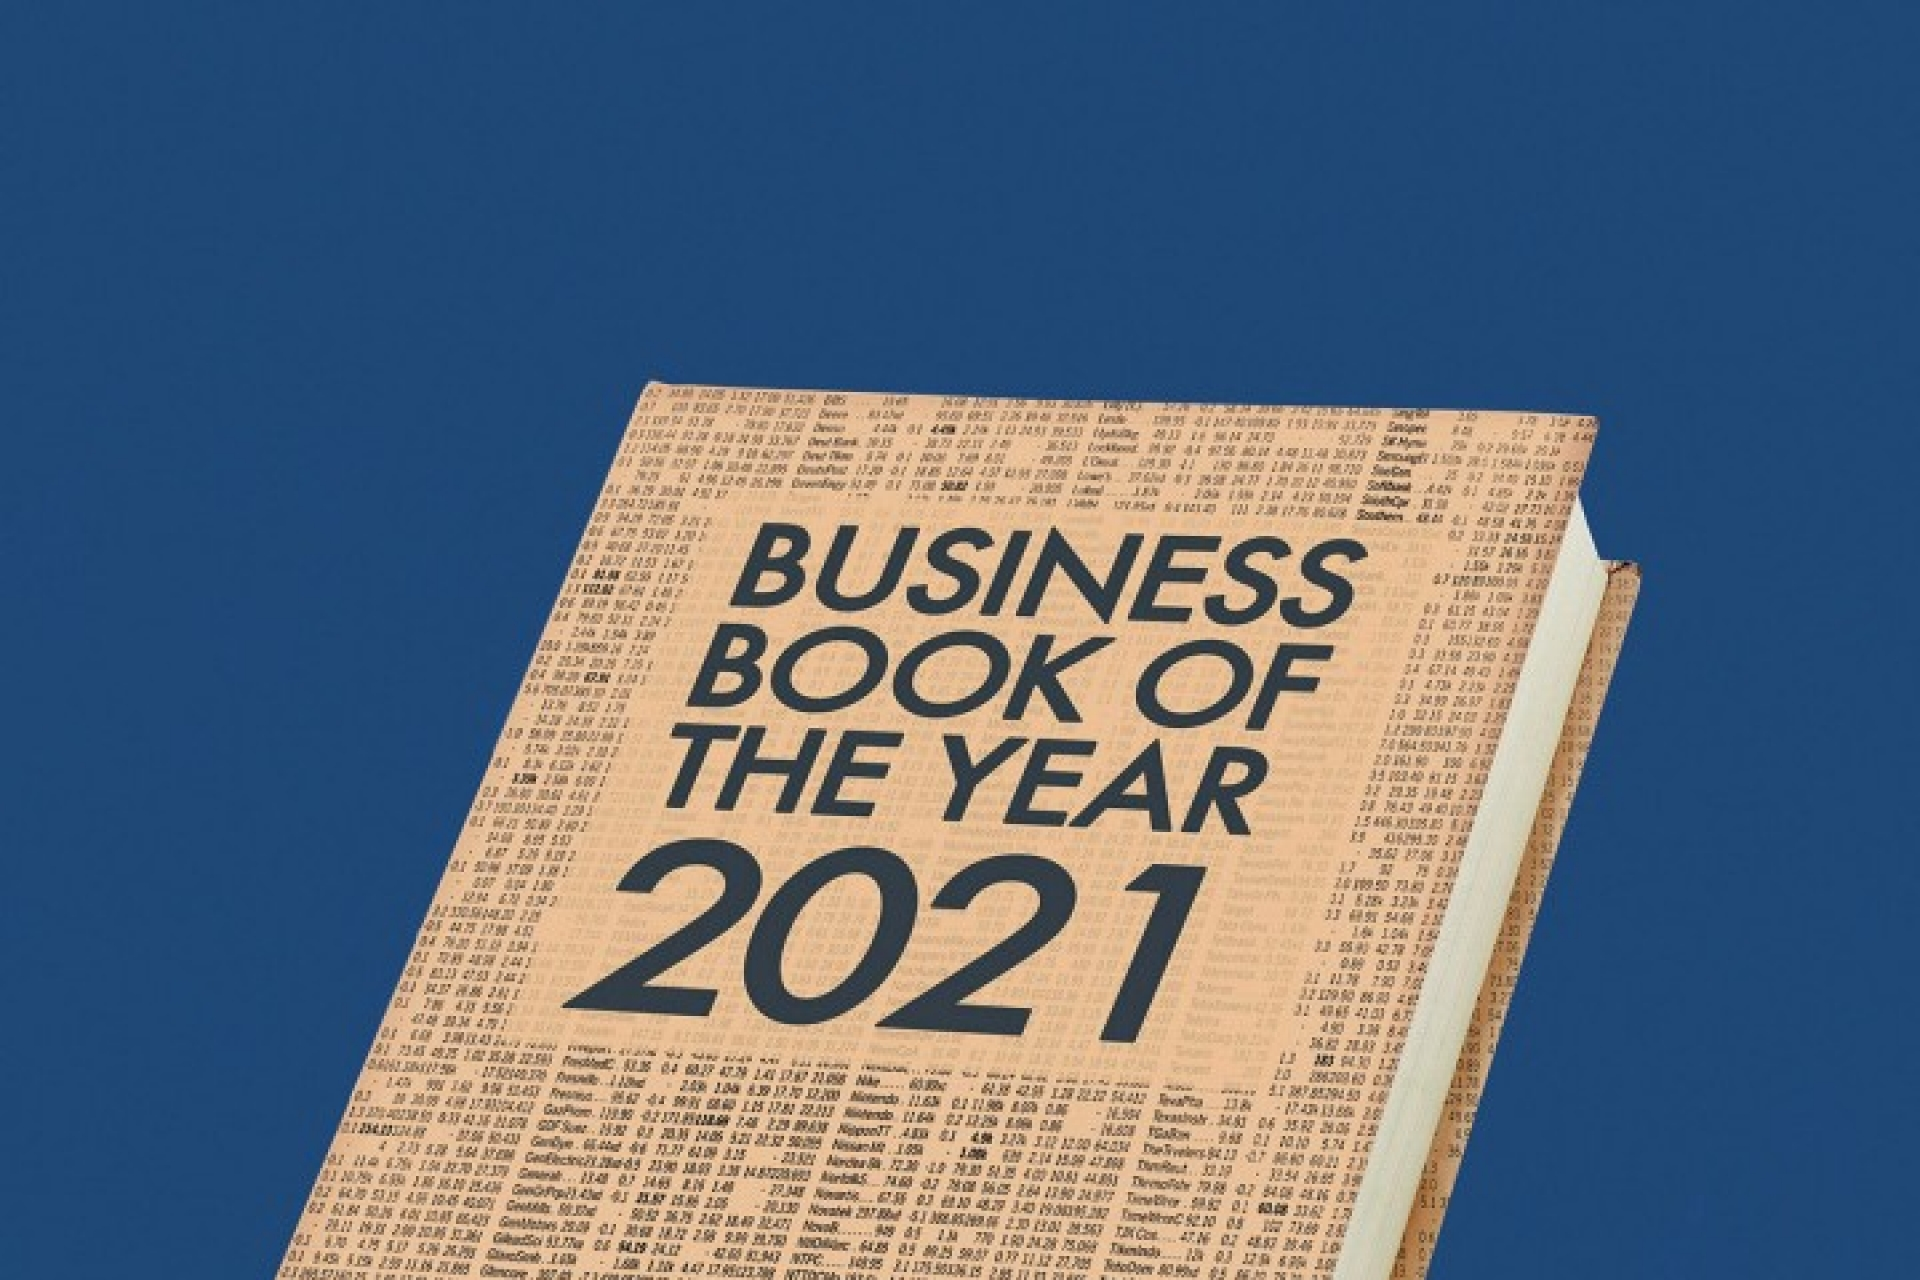 Longlist revealed for the FT Business Book of the Year Award 2021